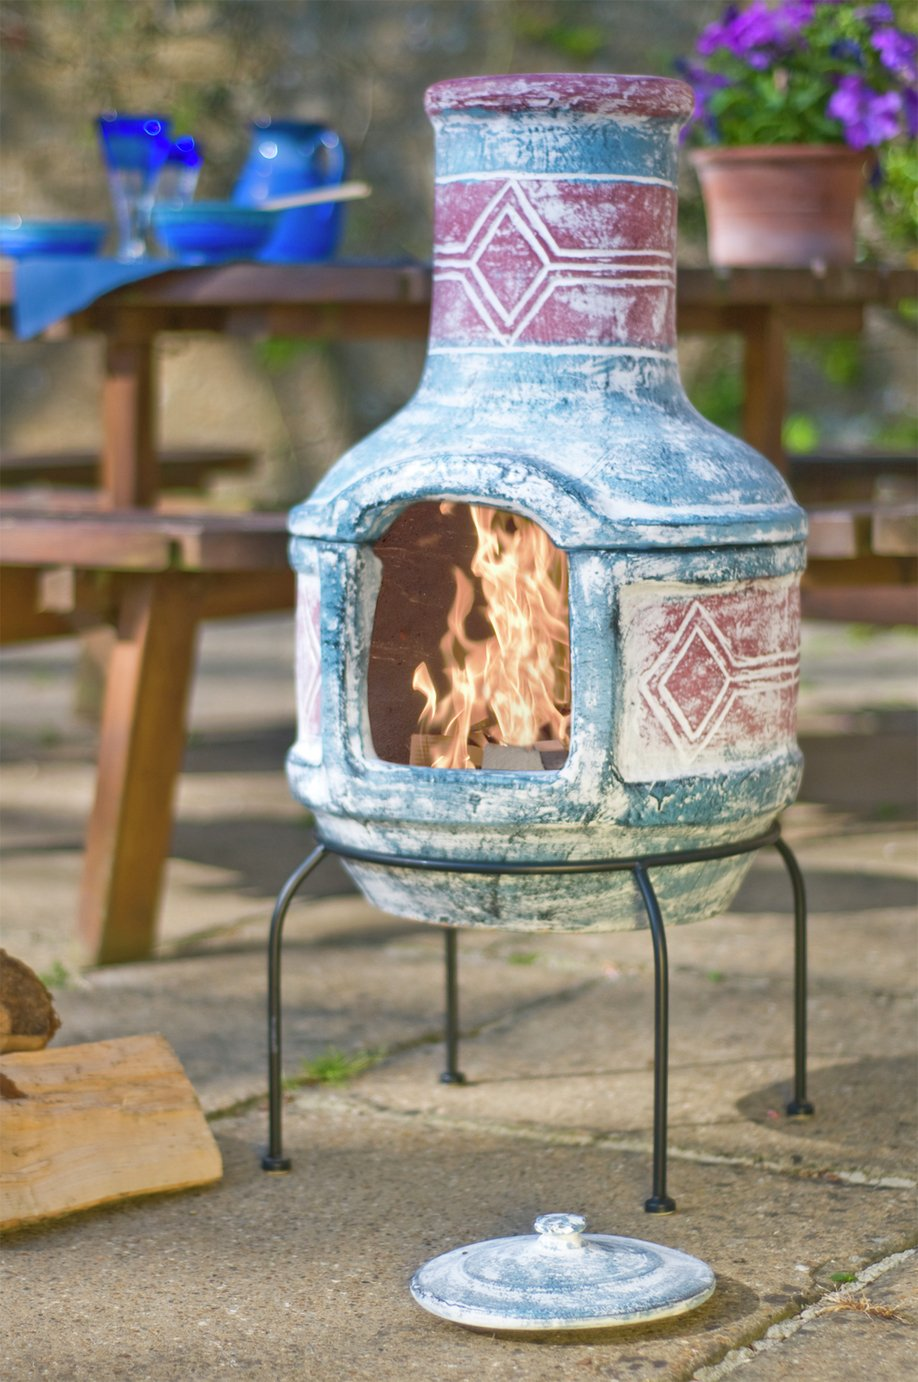 La Hacienda Geometric Clay Chimenea with Grill